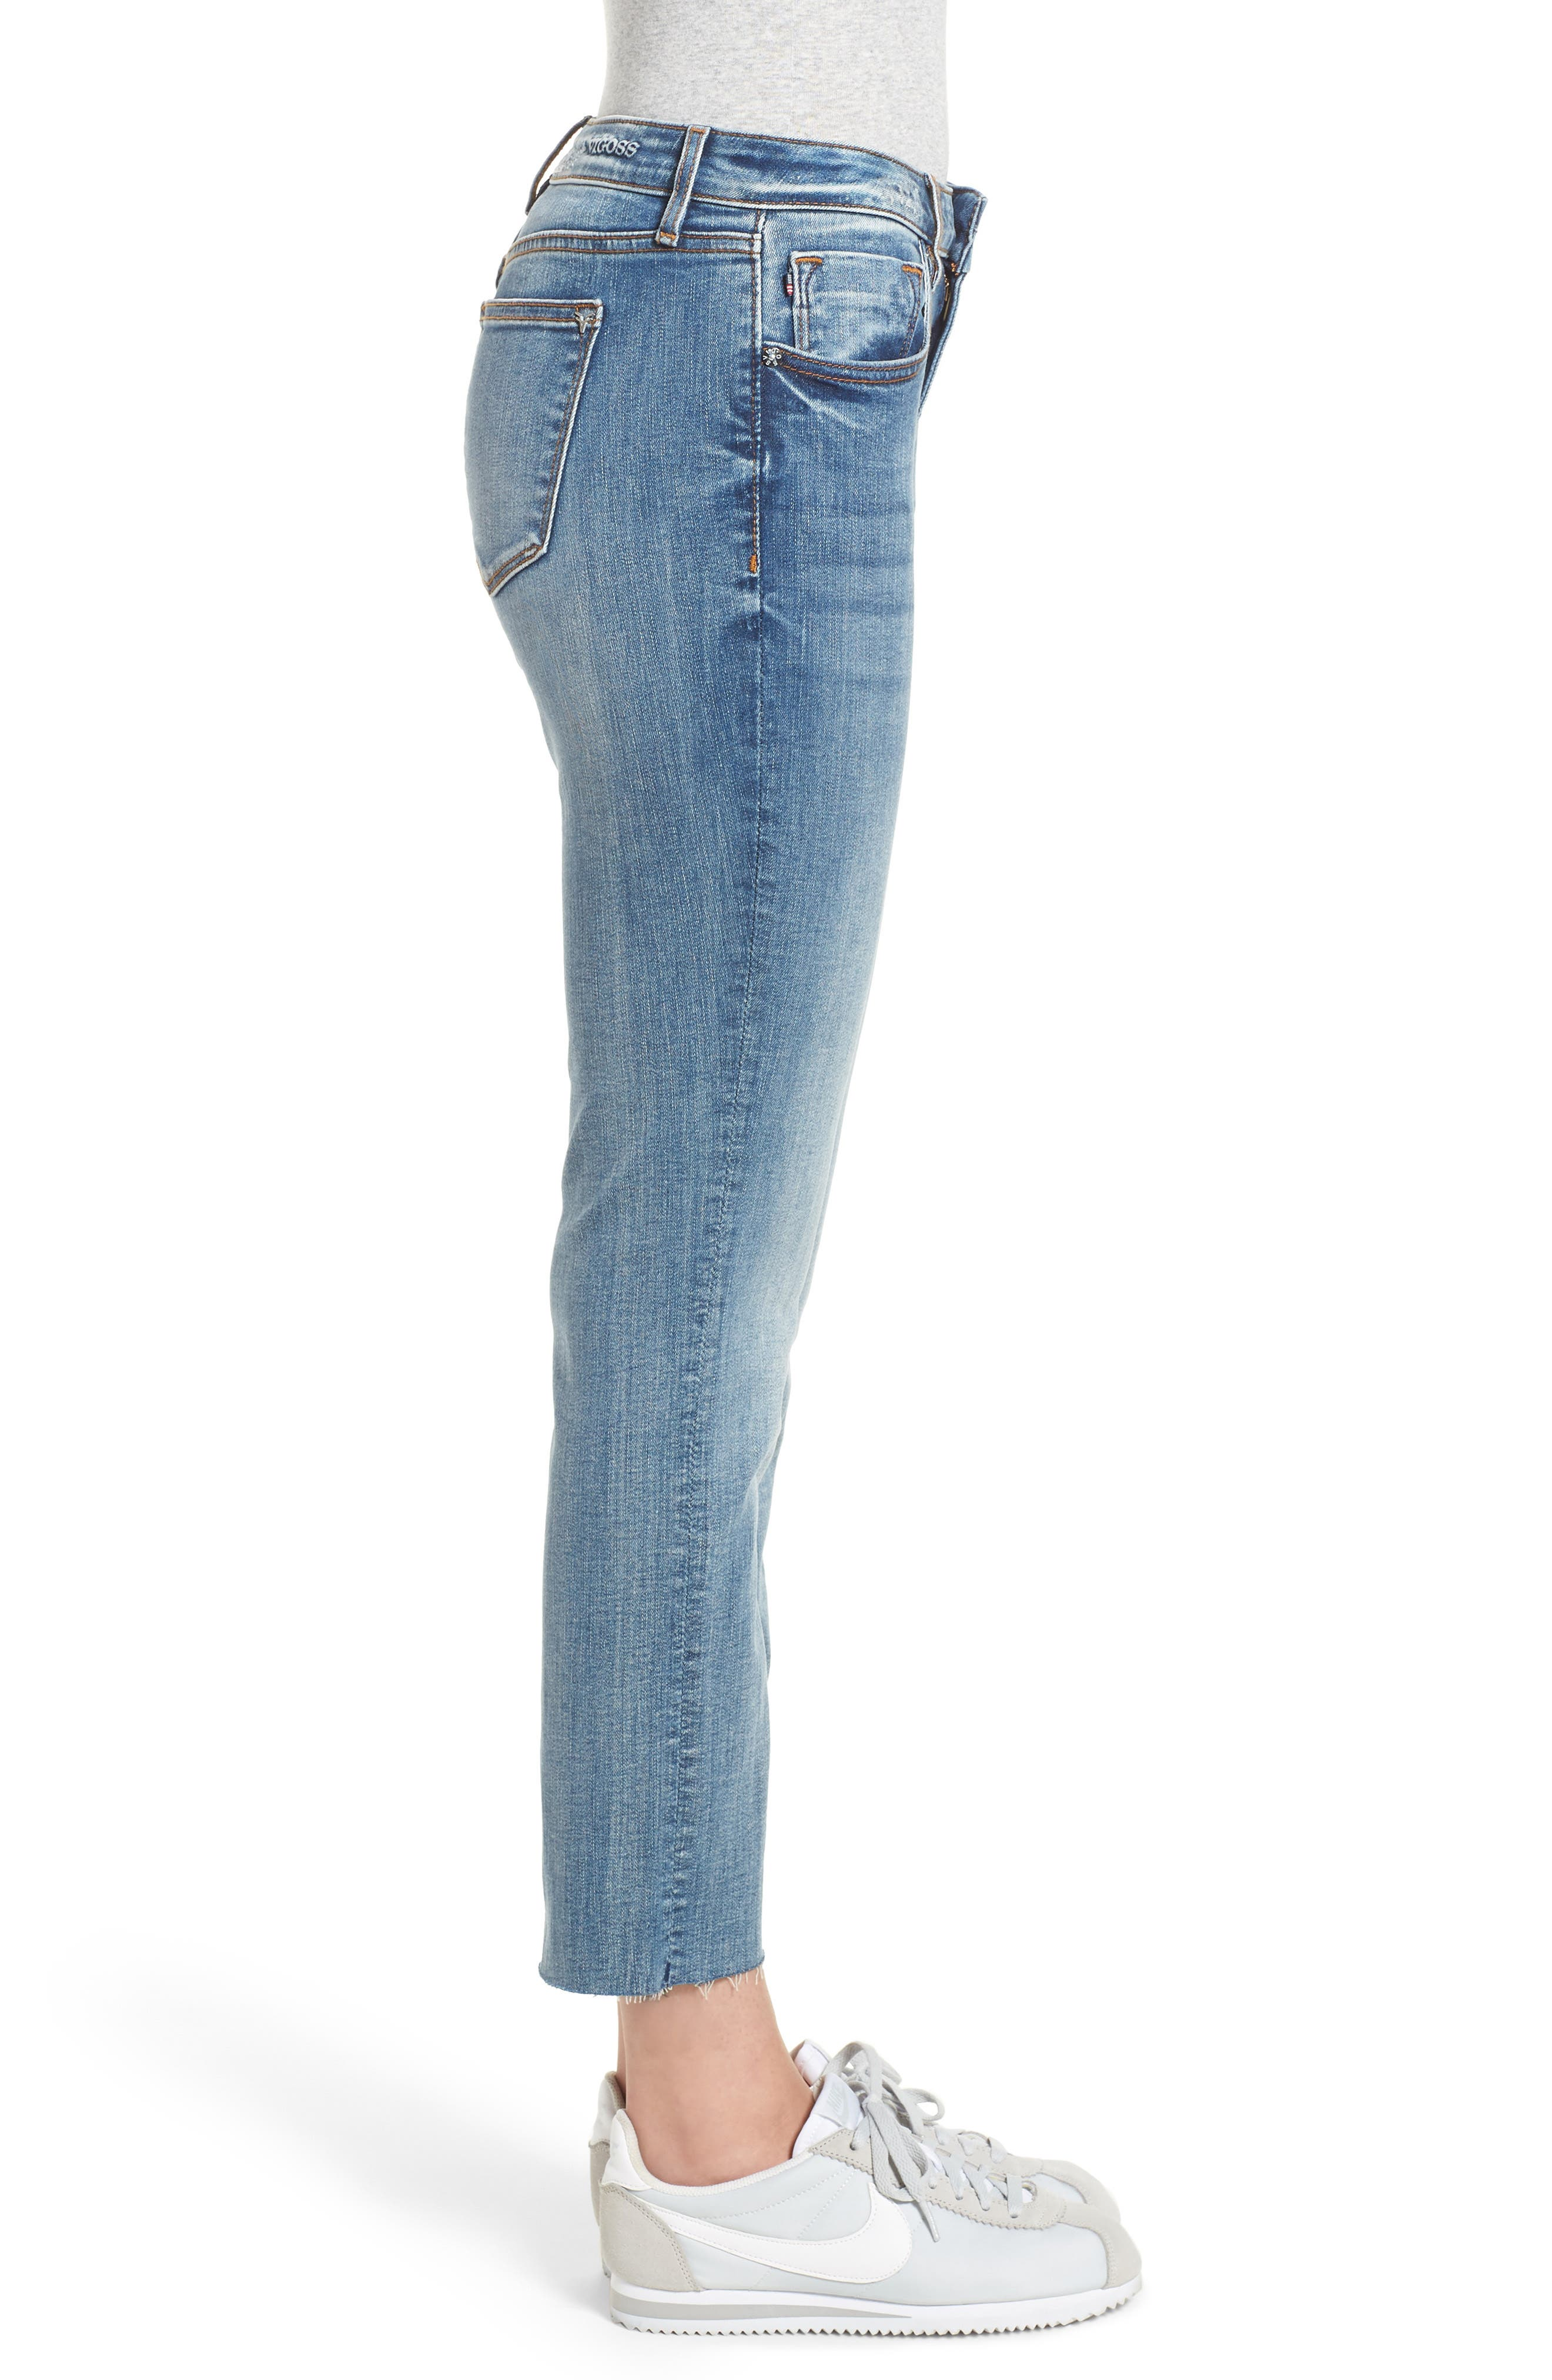 Jagger Crop Straight Leg Jeans,                             Alternate thumbnail 3, color,                             Med Wash